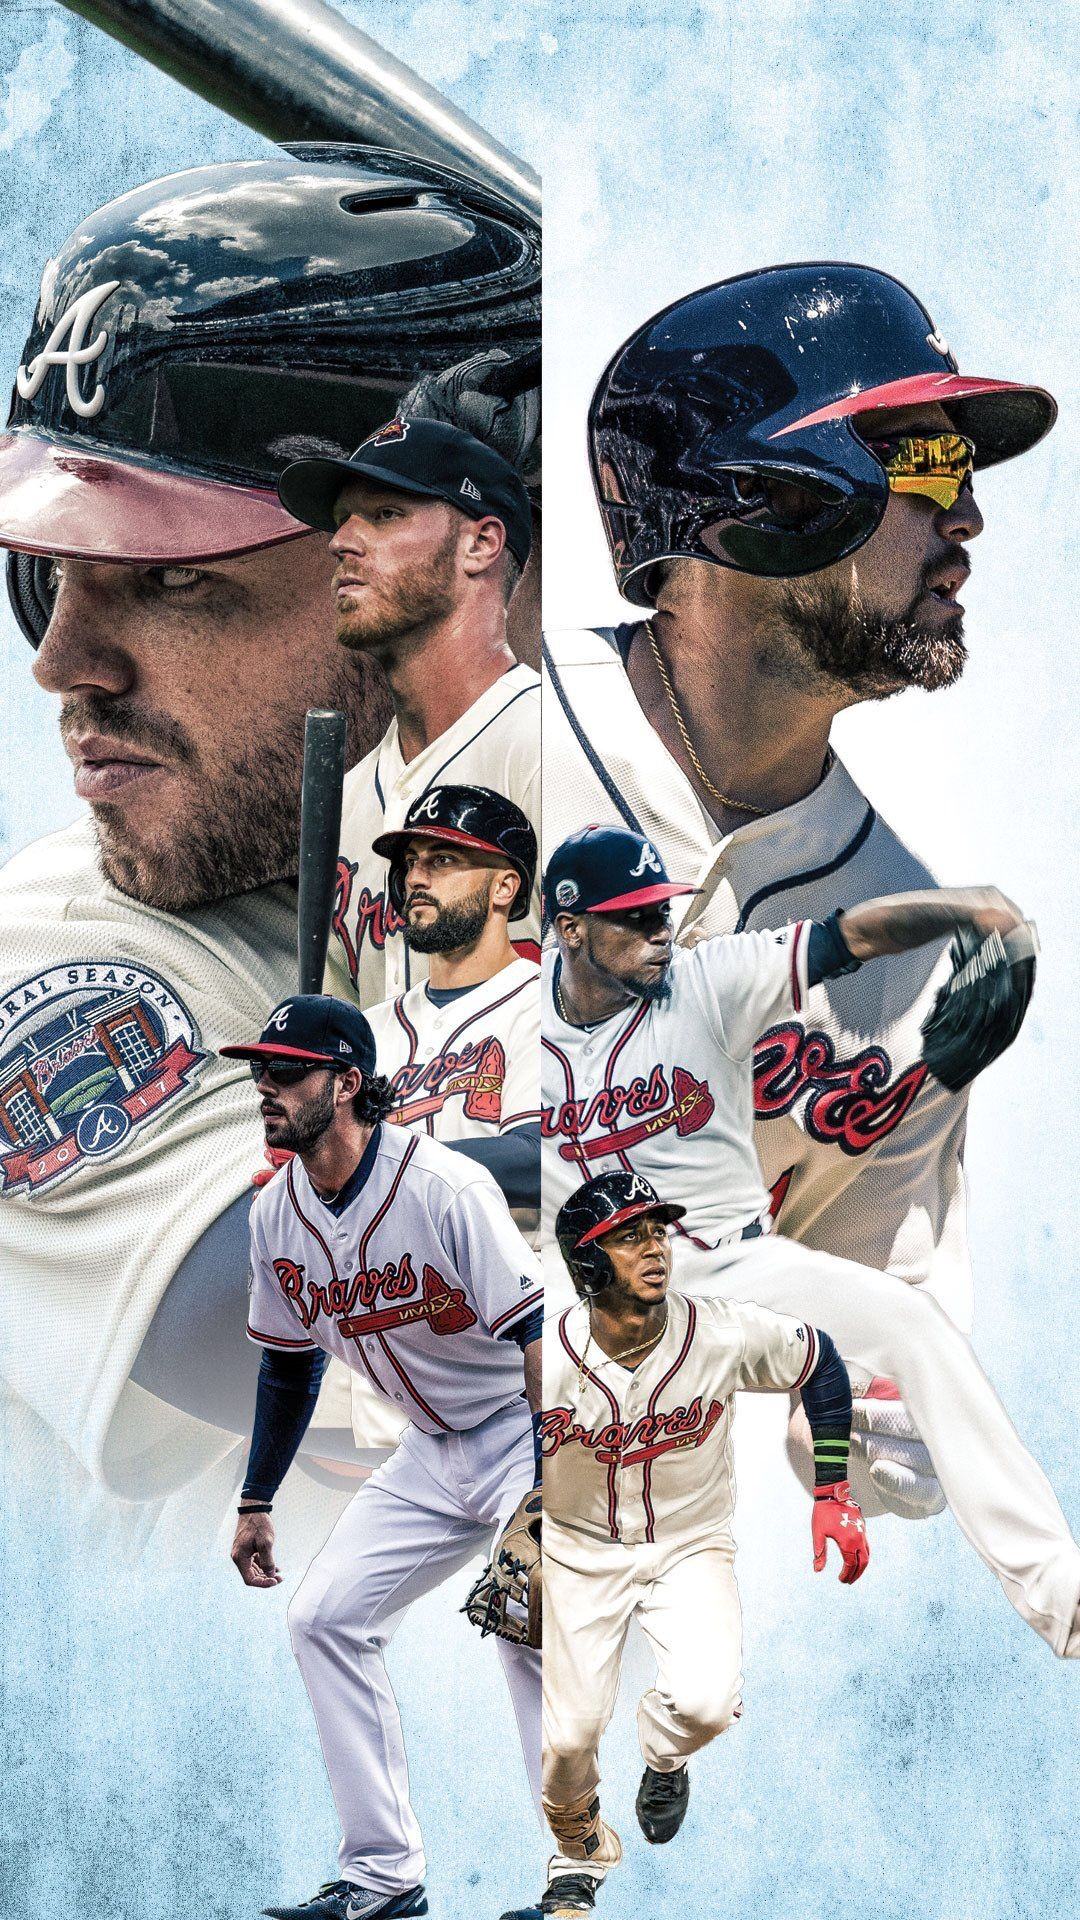 Braves Wallpaper Atlanta Braves Wallpaper Atlanta Braves Baseball Braves Baseball